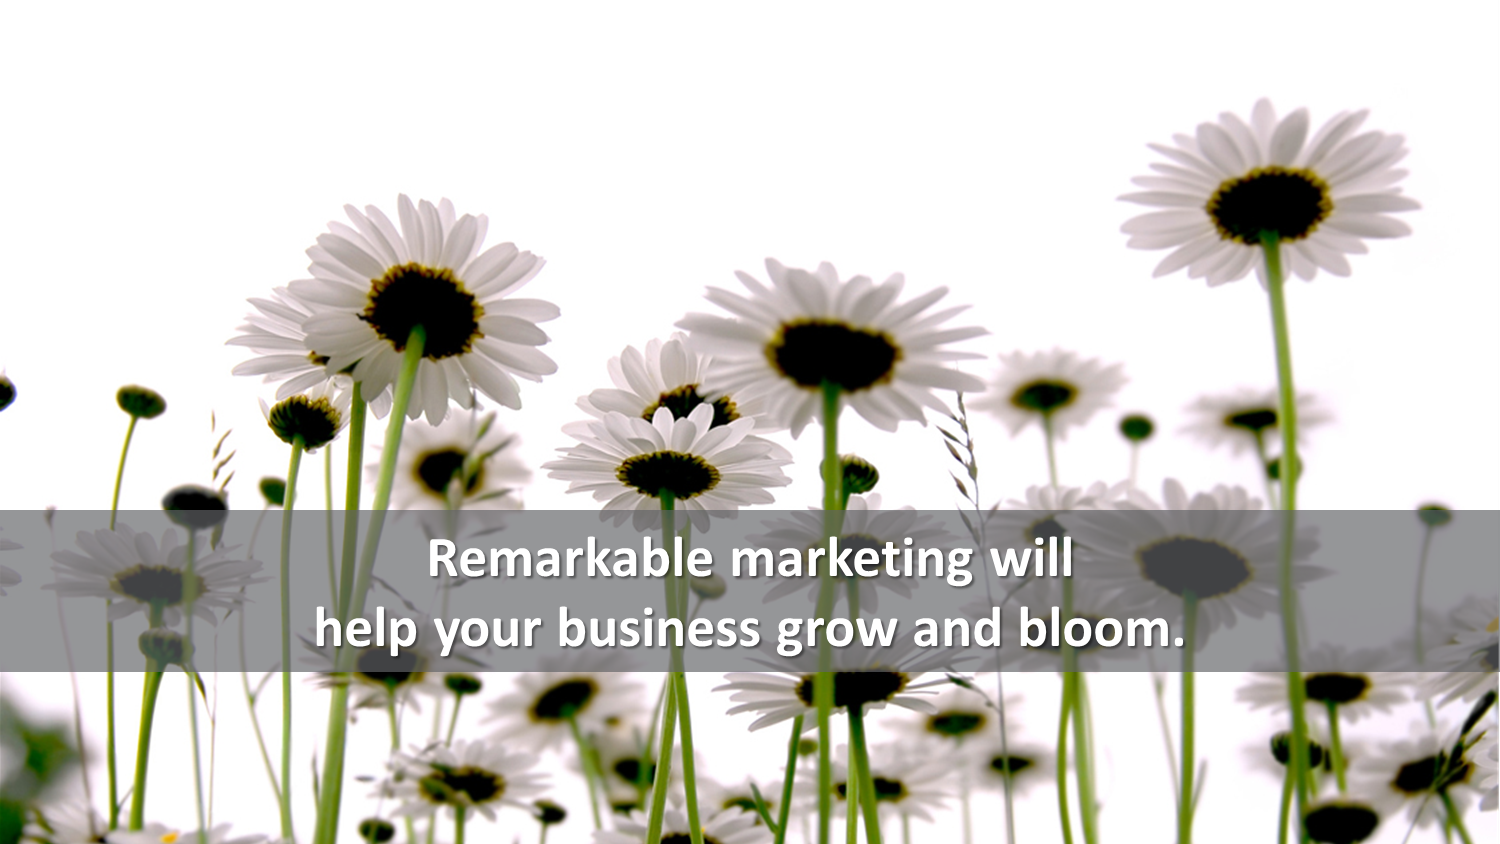 marketing strategies to grow your business